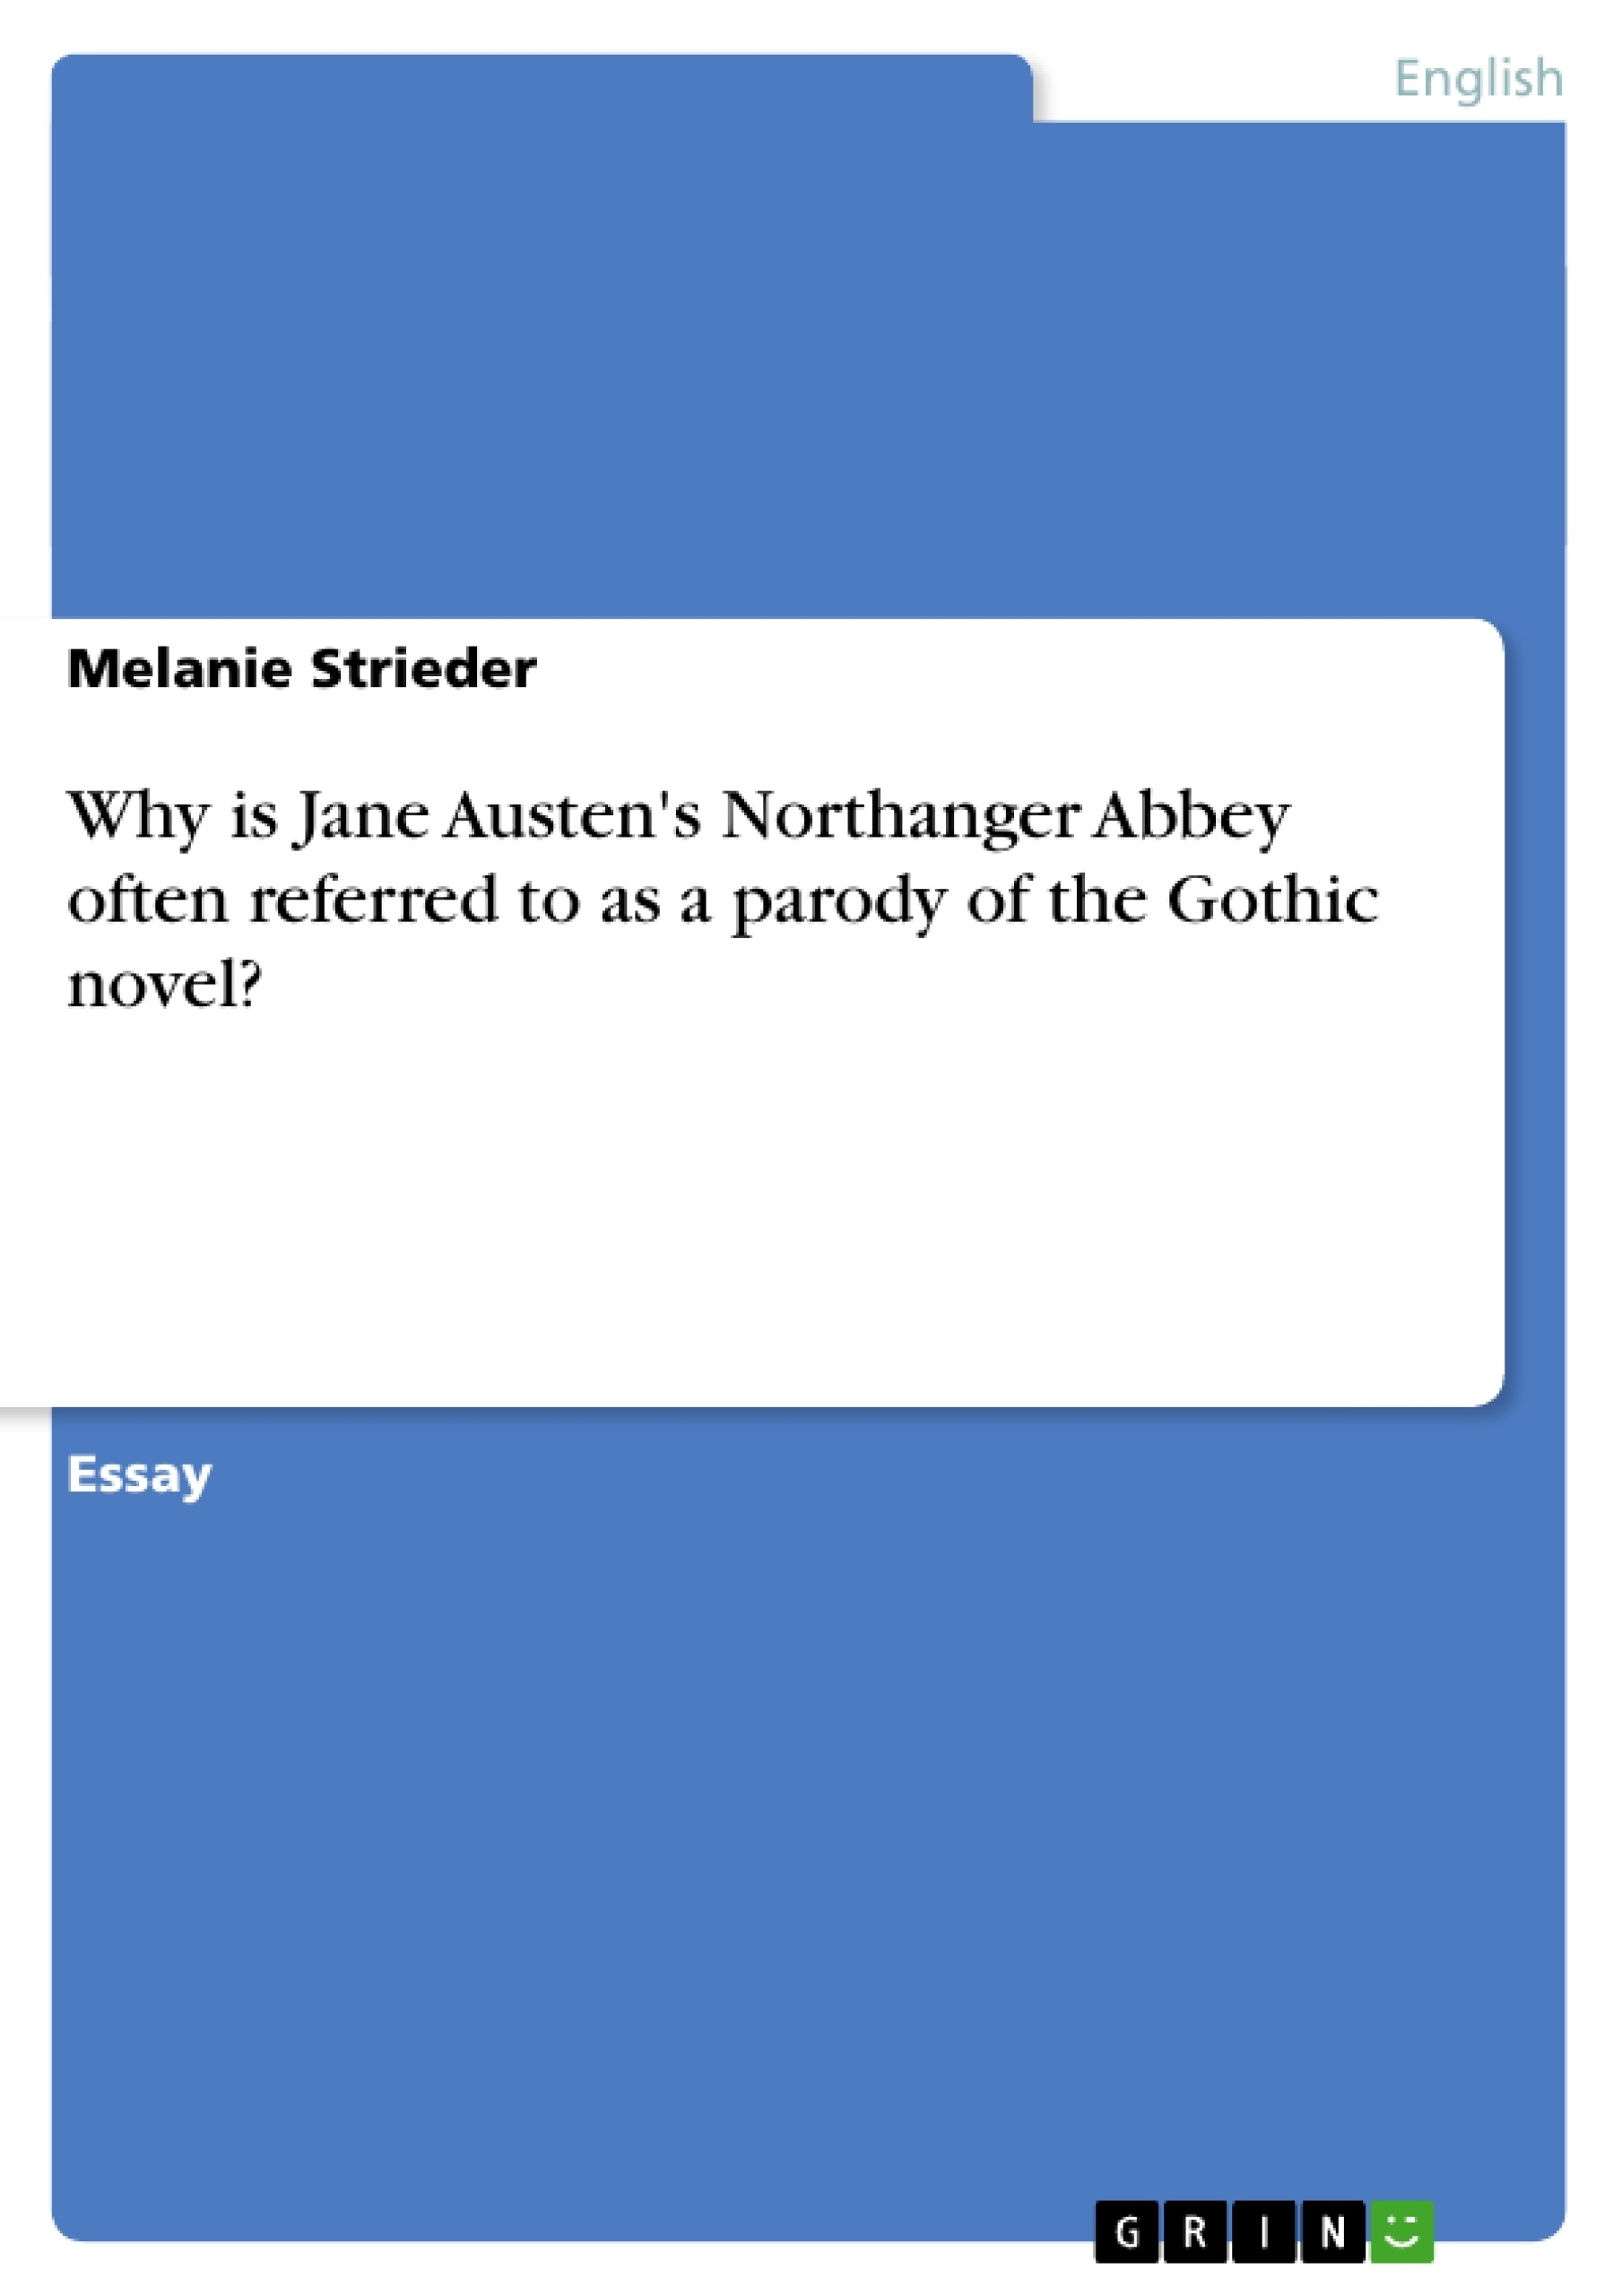 Title: Why is Jane Austen's Northanger Abbey often referred to as a parody of the Gothic novel?